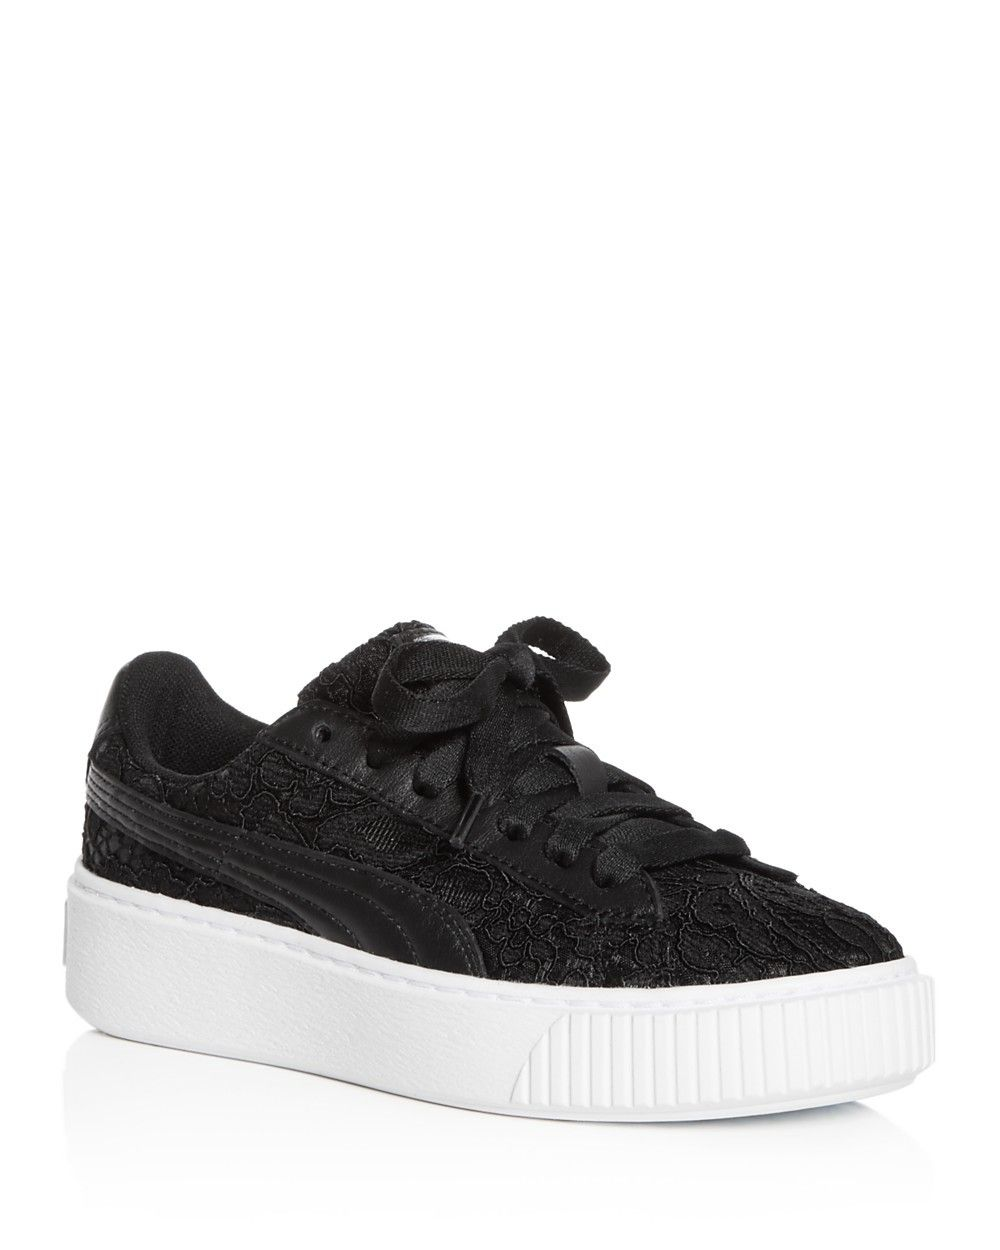 black&white puma shoes made in vietnam baskets wholesale